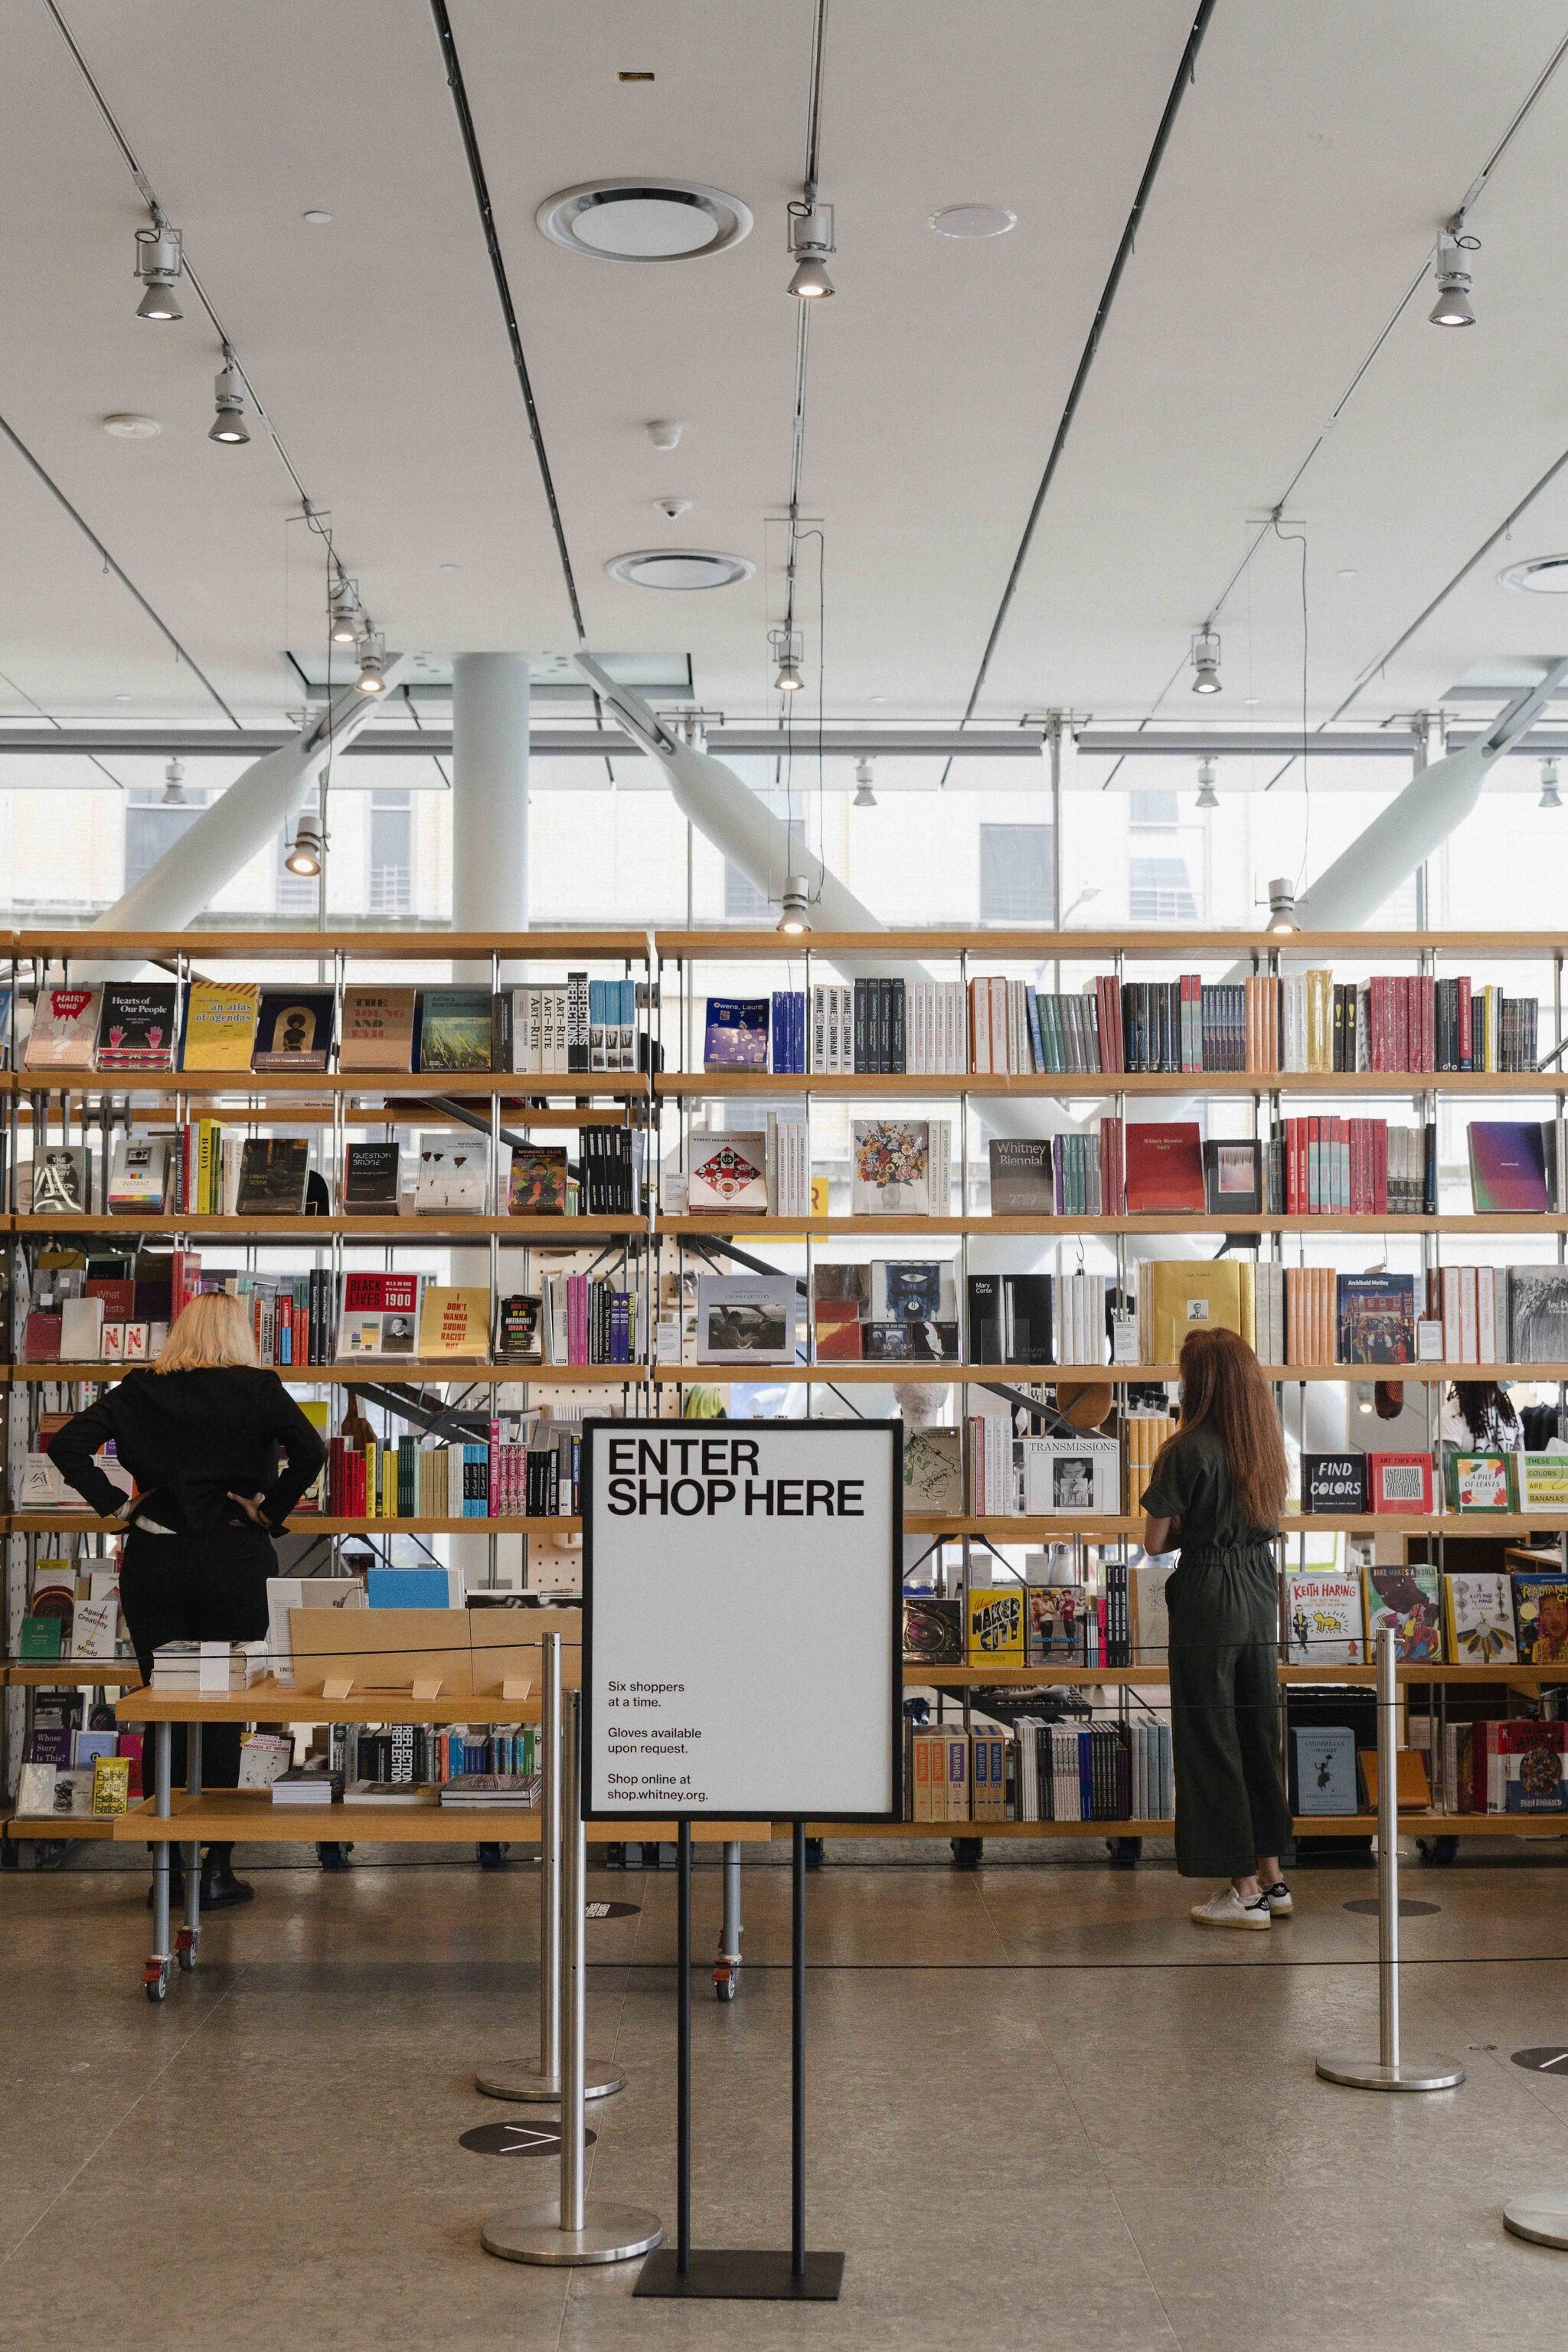 Visitors explore the book selection at the Whitney shop